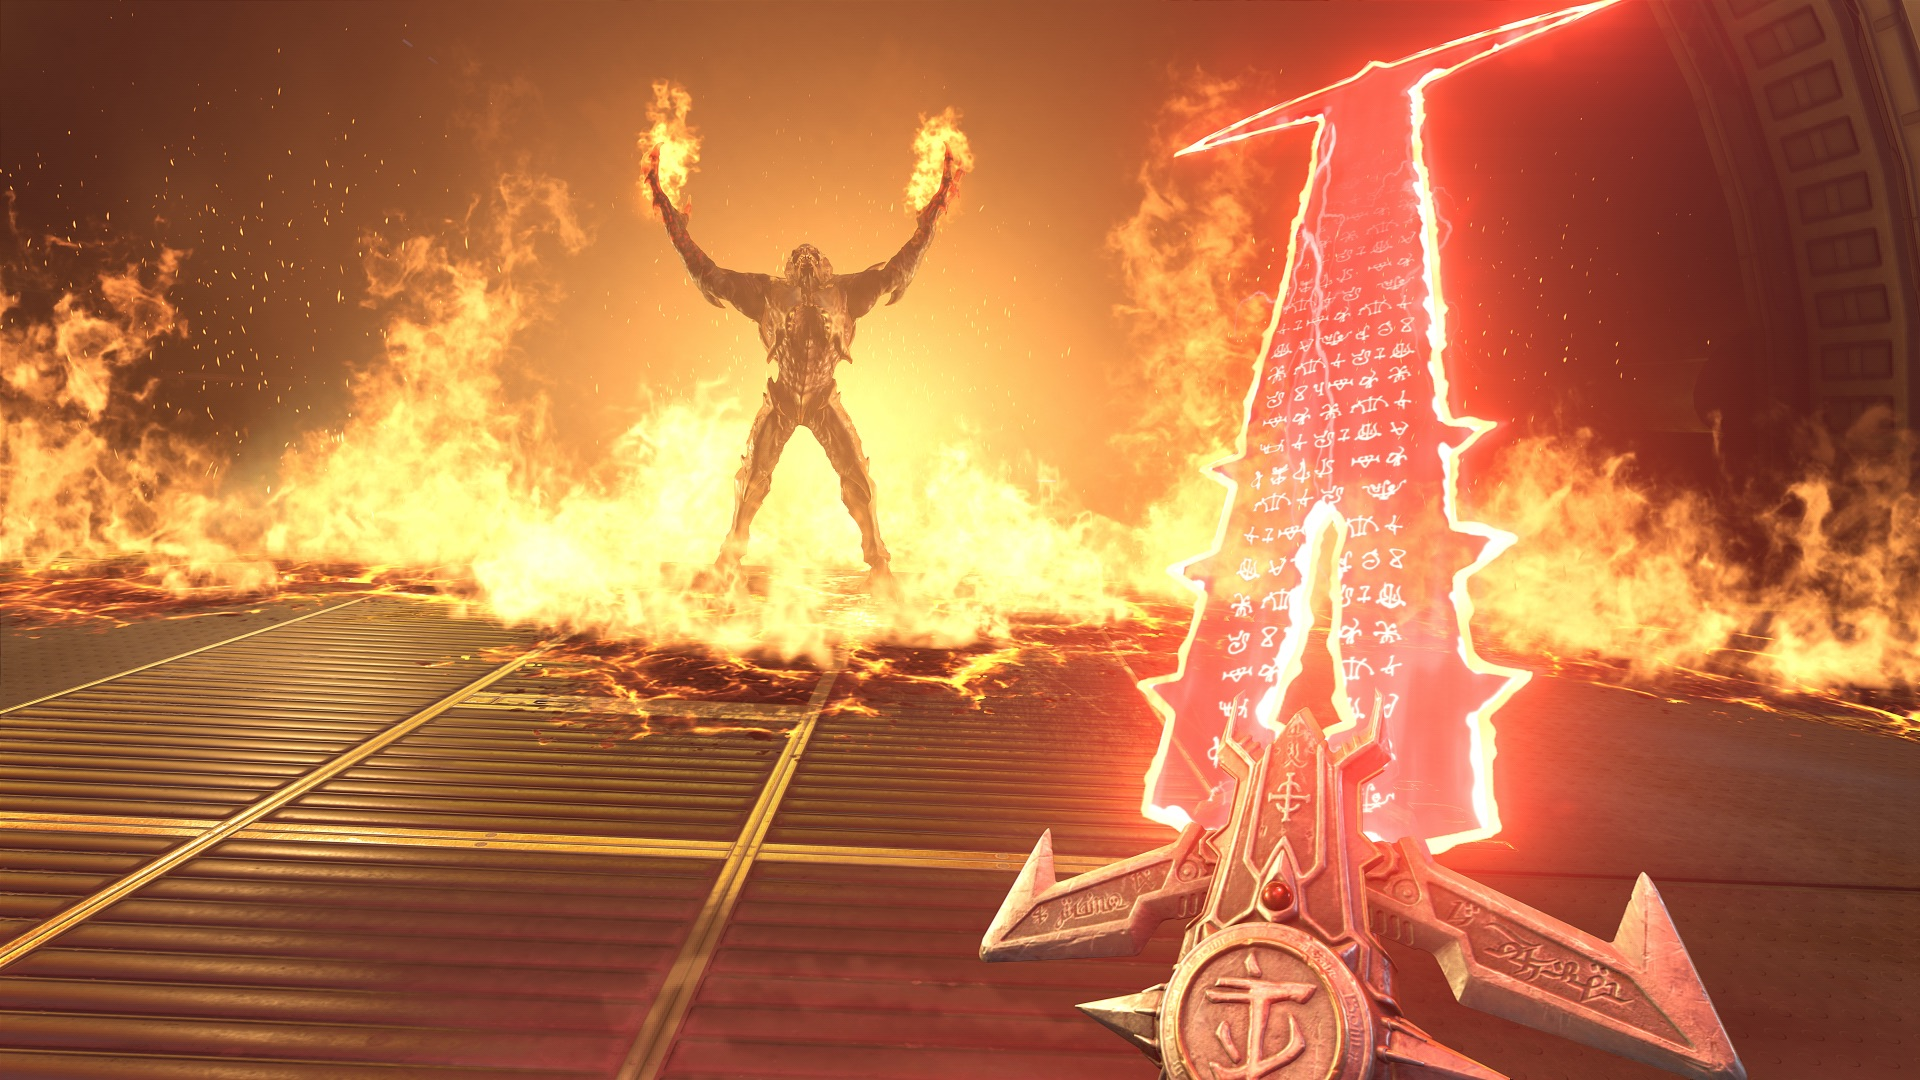 Media asset in full size related to 3dfxzone.it news item entitled as follows: Bethesda presenta il game DOOM Eternal con gameplay trailer e screenshots | Image Name: news28544_DOOM-Eternal-Screenshot_14.jpg